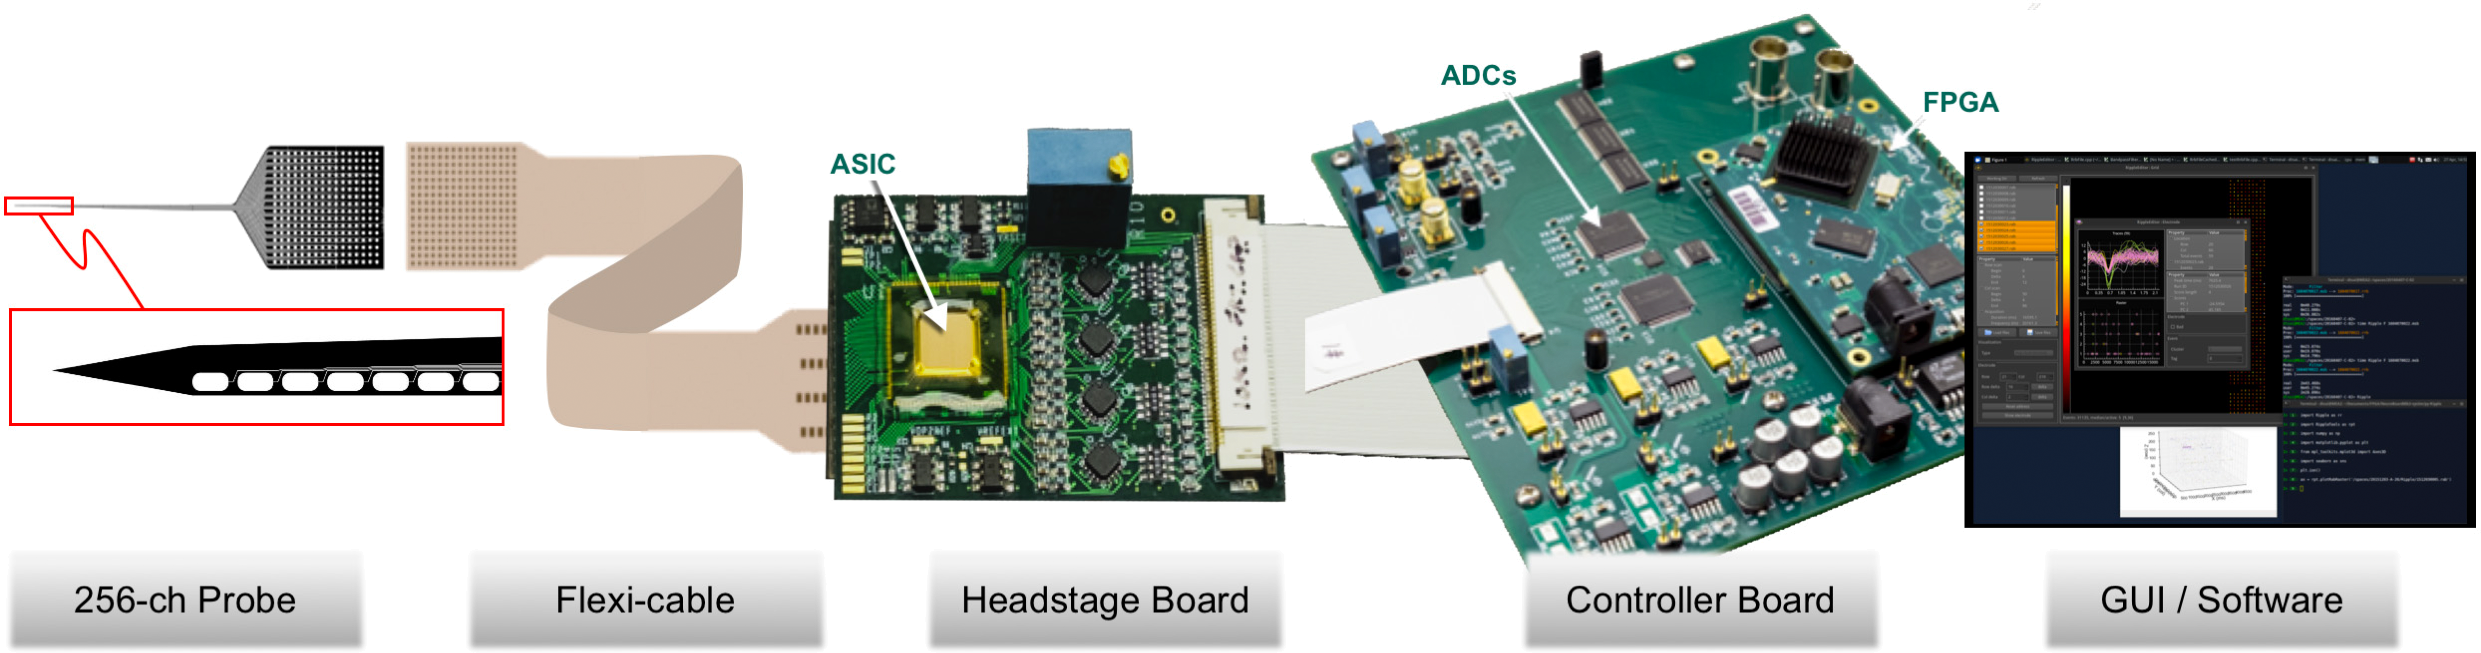 Figure 1.  Ephys system building blocks that are being disseminated to the user community. Provided components constitute a complete measurement system, including: silicon neural nanoprobe; flexi-cable that connects probe to headstage electronics; the headstage board itself, containing our custom 1024-channel ASIC; the back-end controller board with USB-3 output; first-gen graphical user interface software for controlling system and acquiring data (Mac and PC compatible). The ribbon cable picture between the headstage and the controller boards will, in practice, be replaced with a fine wire bundle to permit free behavior of the subject under study.